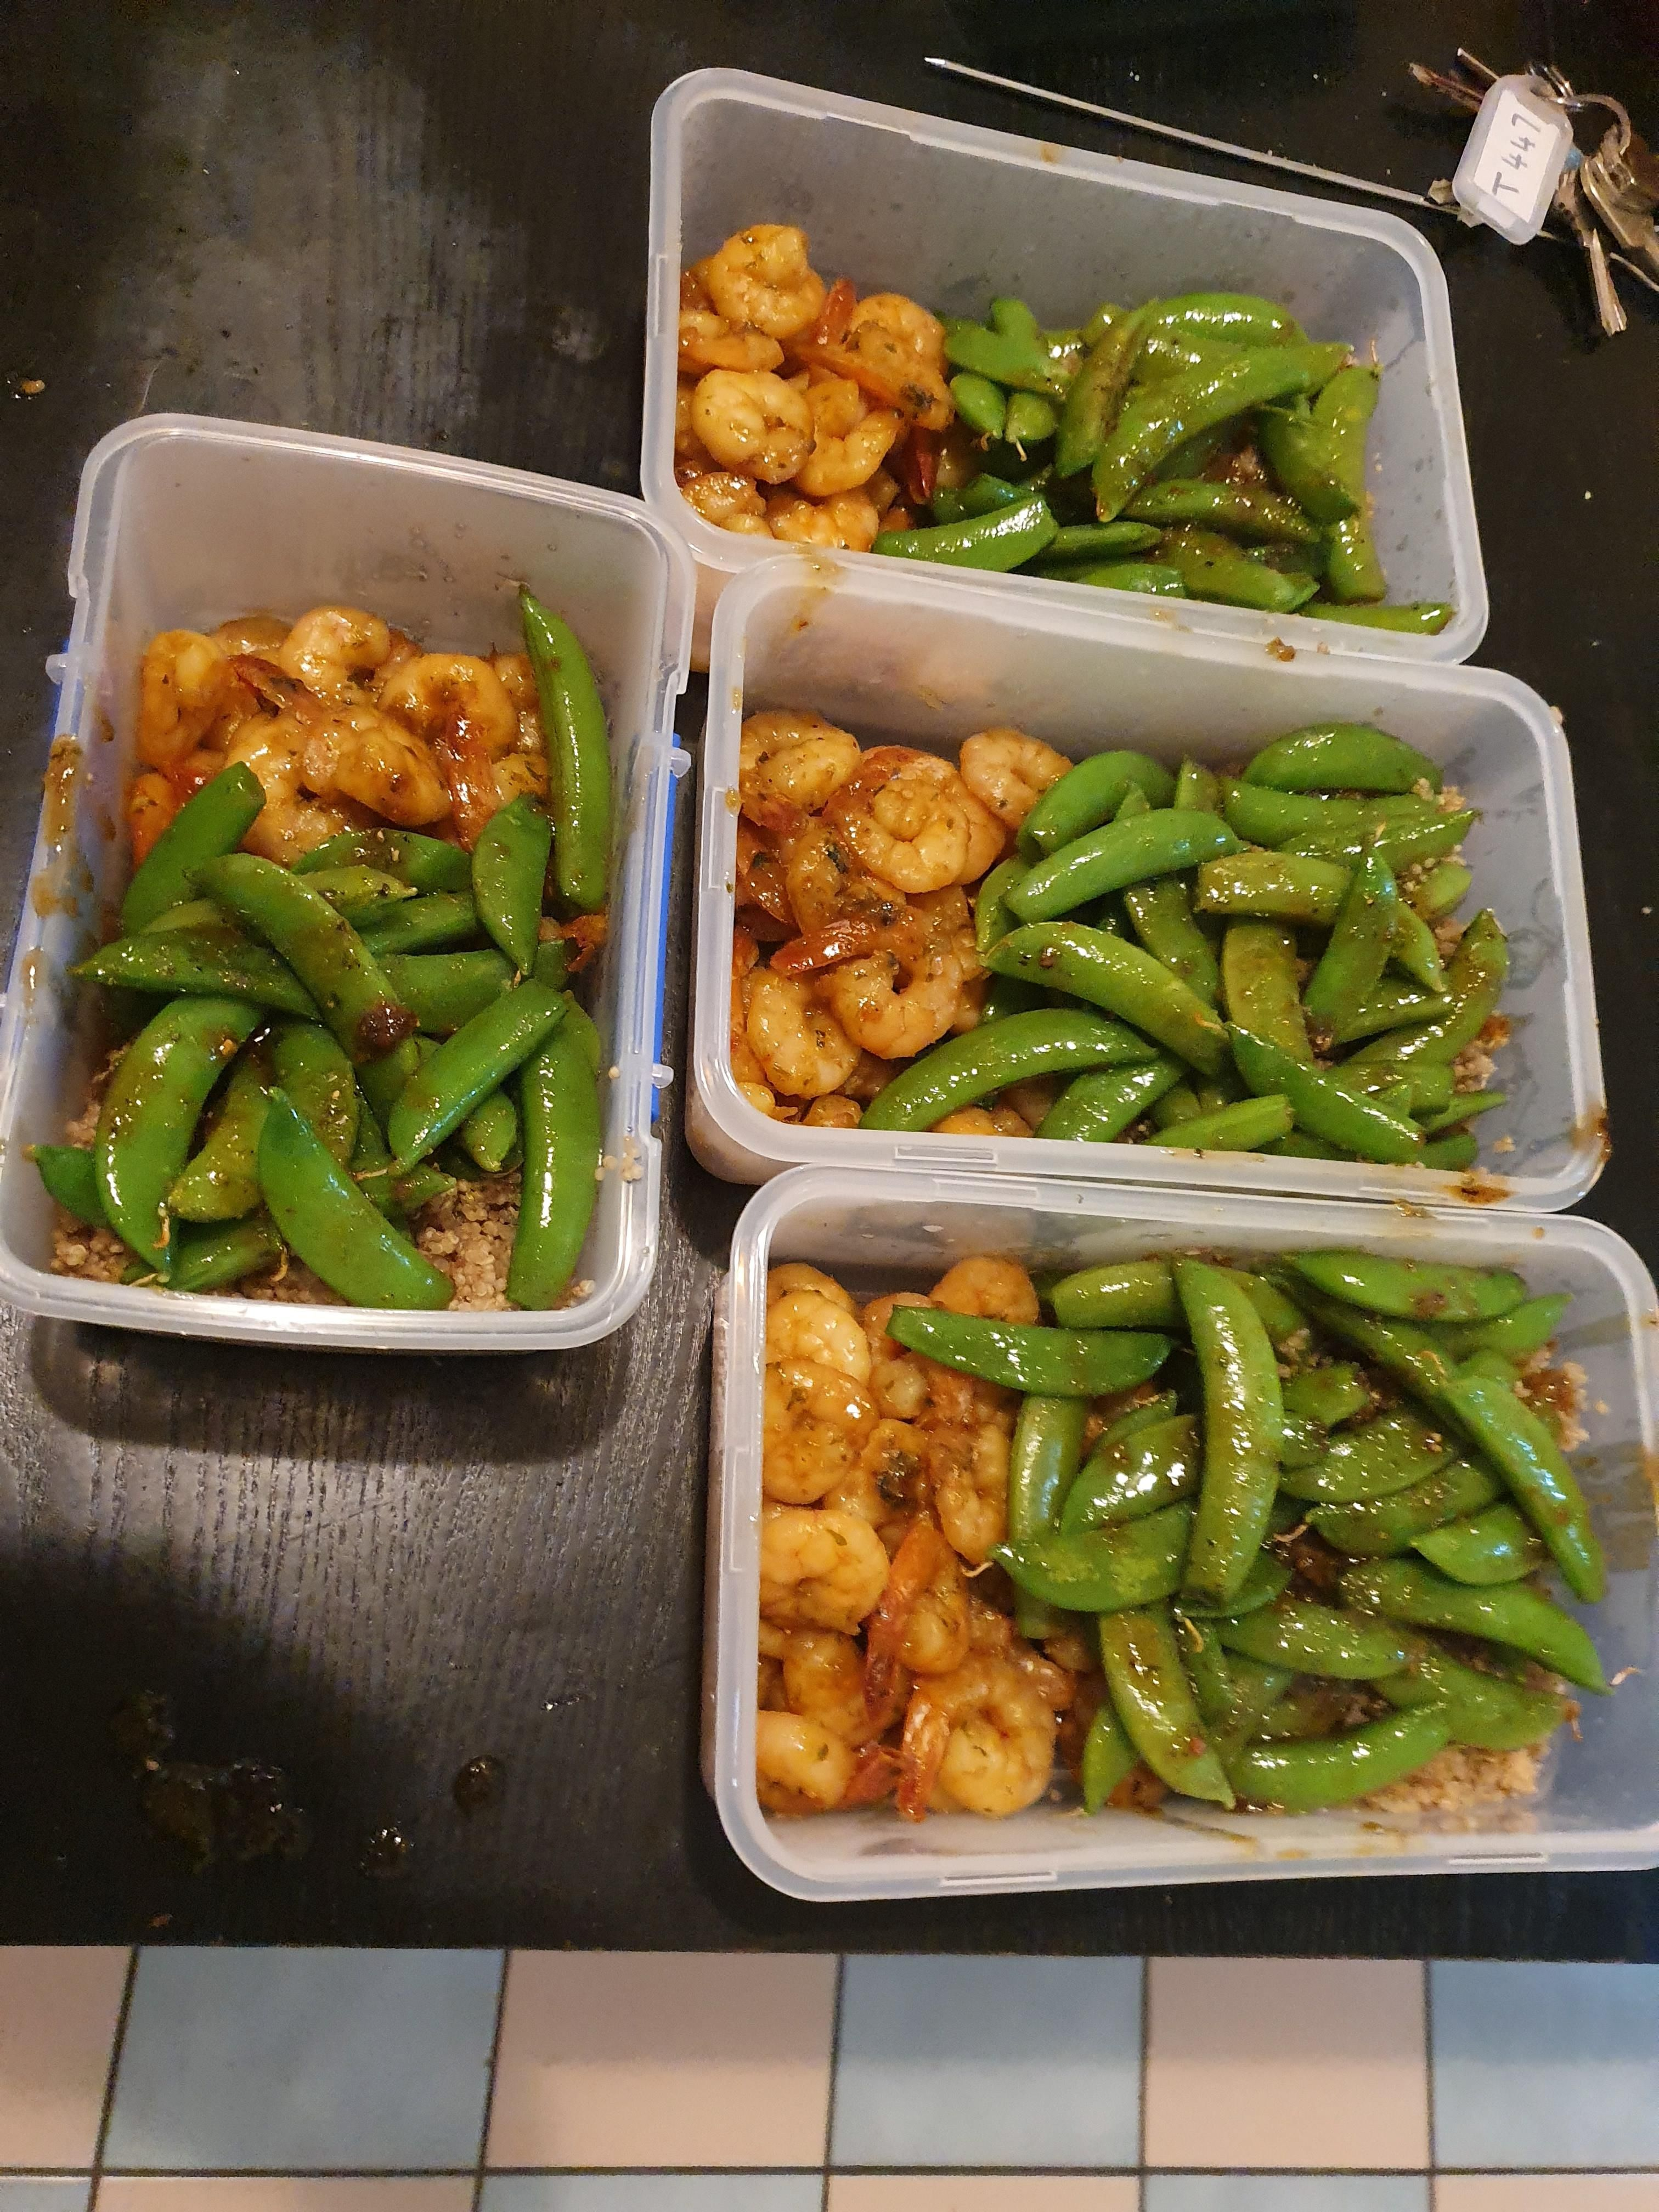 Second Time Doing Prep And This Weeks Looking Good